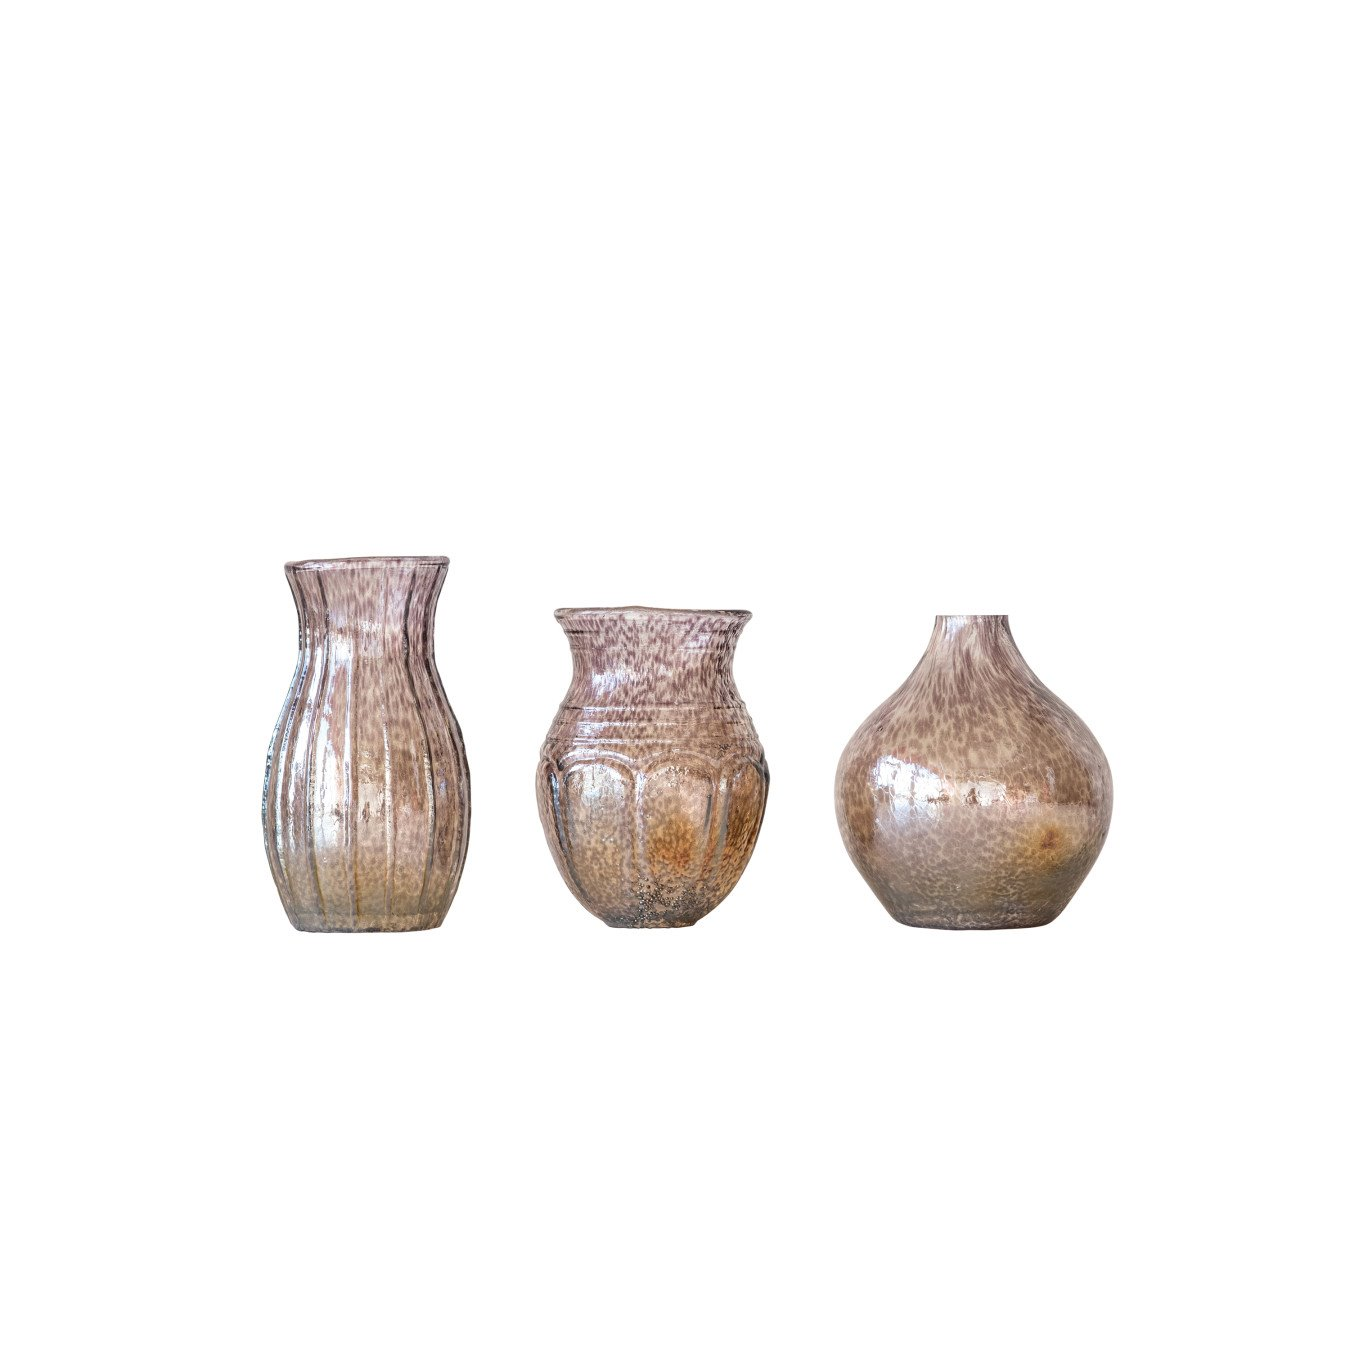 Small Plum Glass Vases with Tan & Off-White Accents (Set of 3 Shapes/Sizes)